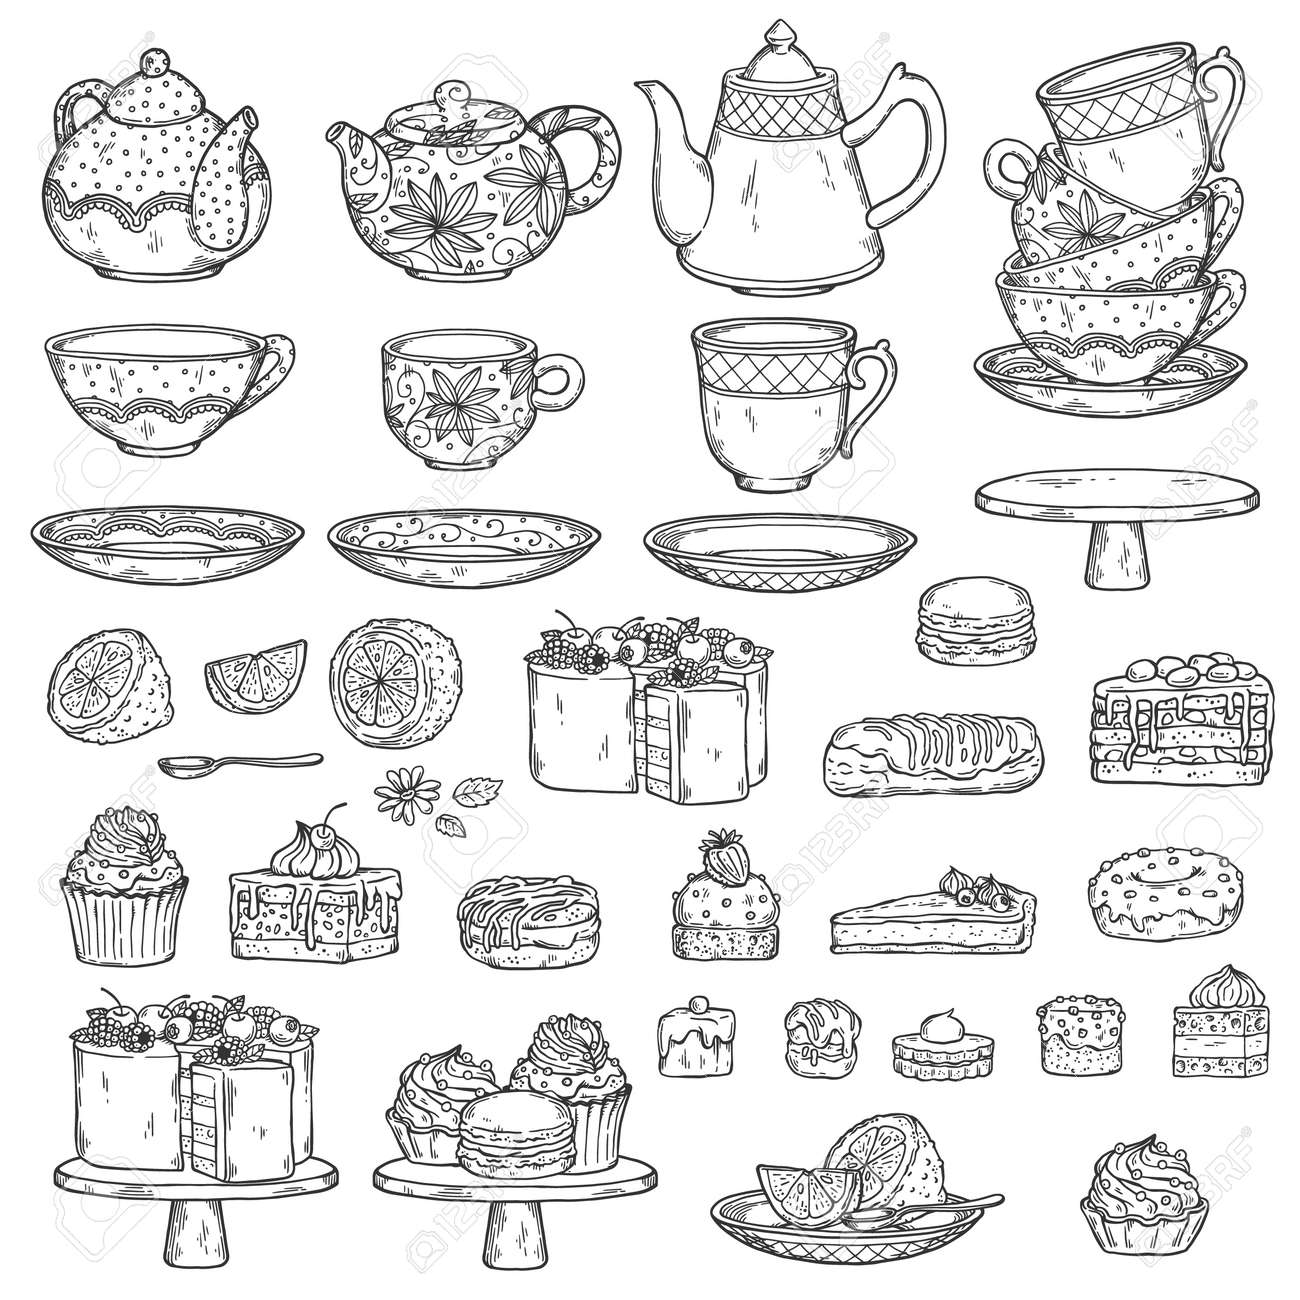 Set of vintage teapots, tea cups and cakes ink drawing outline sketch vector illustration isolated on white background. Line art collection for teatime and teahouse. - 157035235